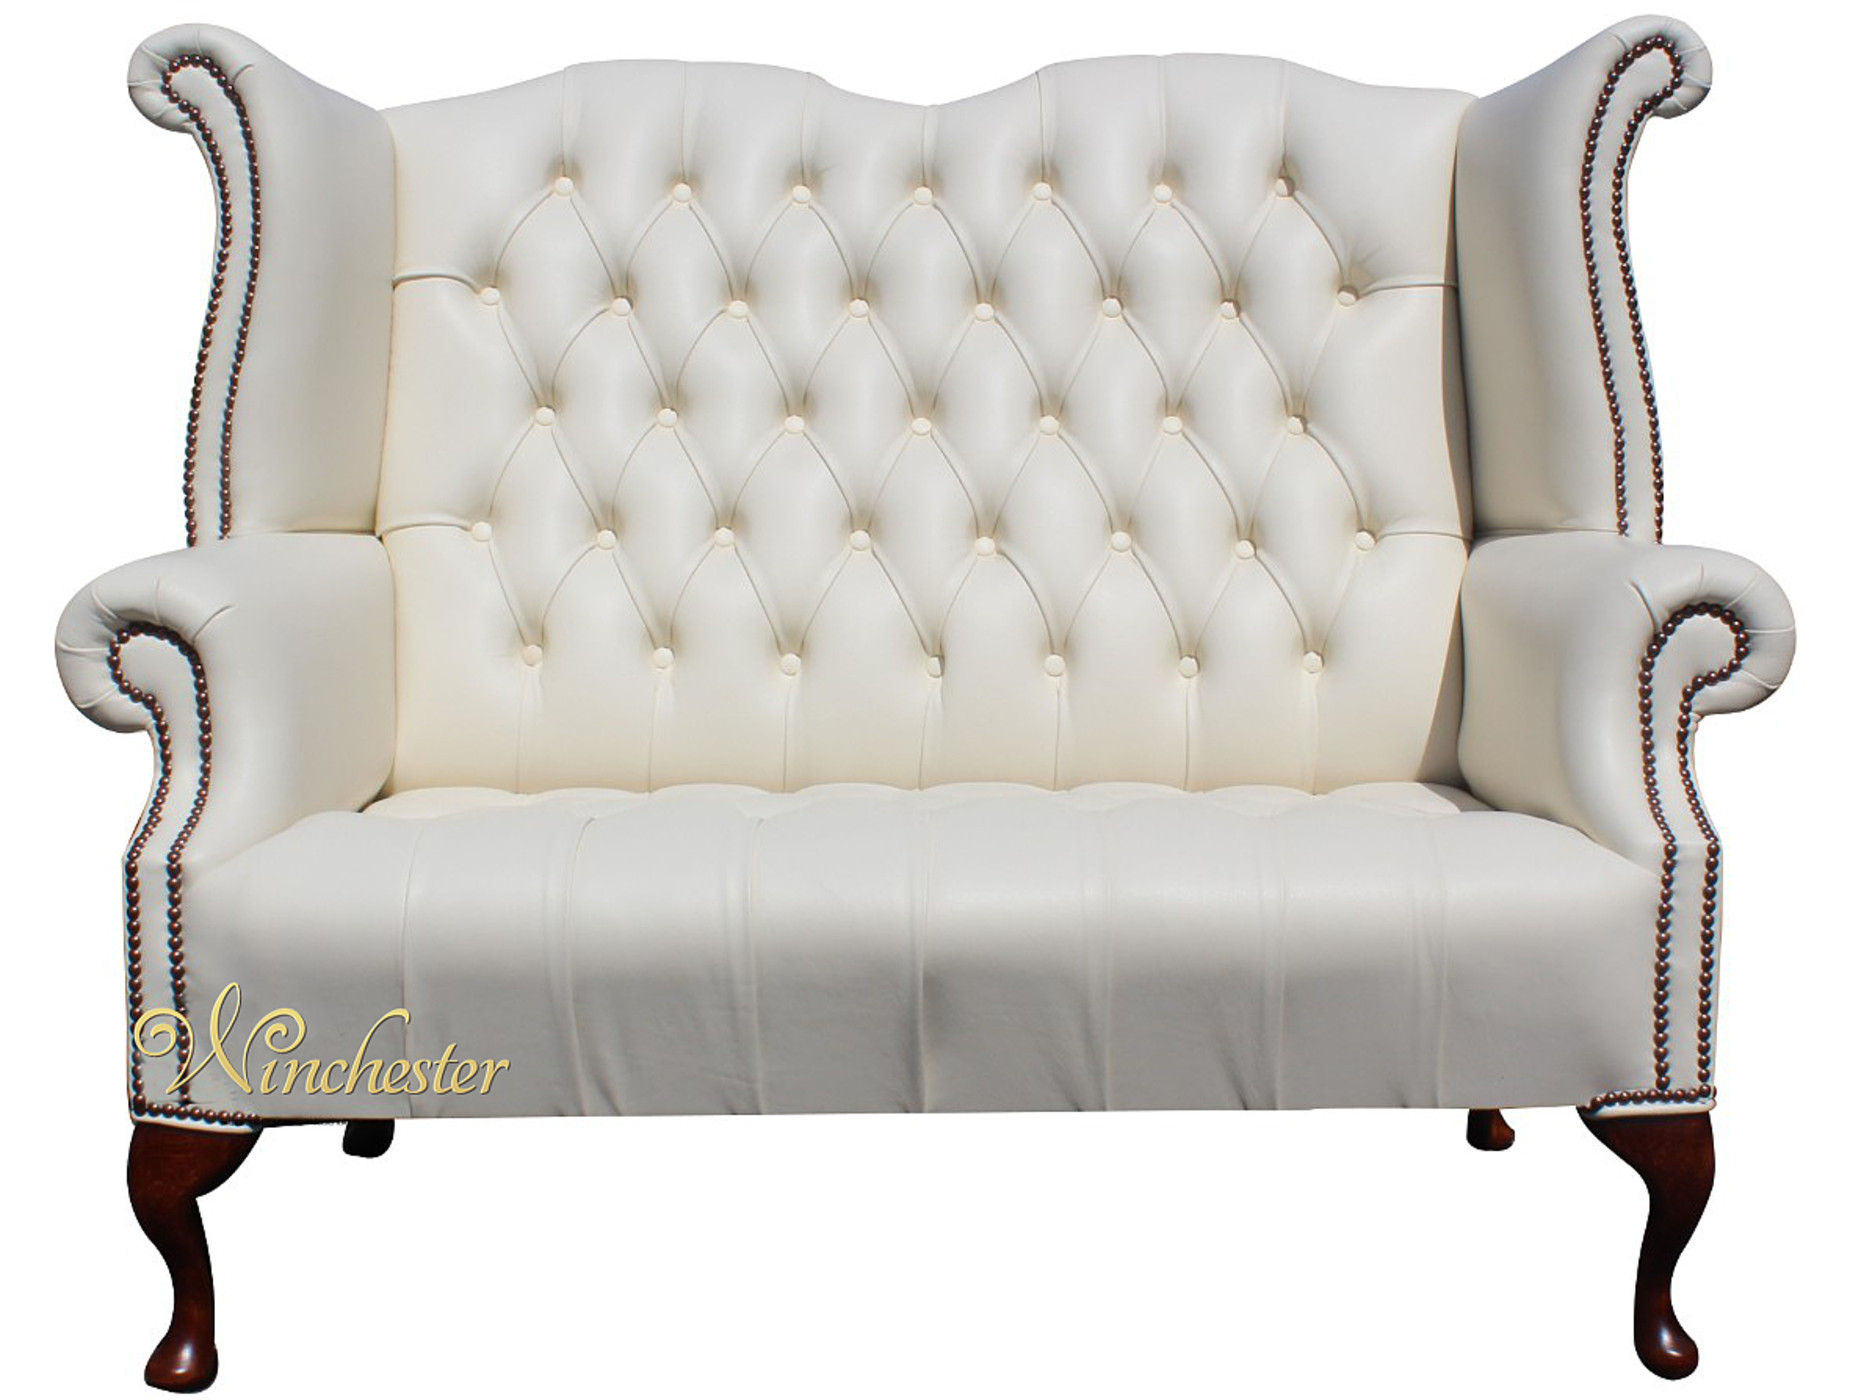 Chesterfield Newby 2 Seater High Back Sofa Cottonseed Cream Leather Wc